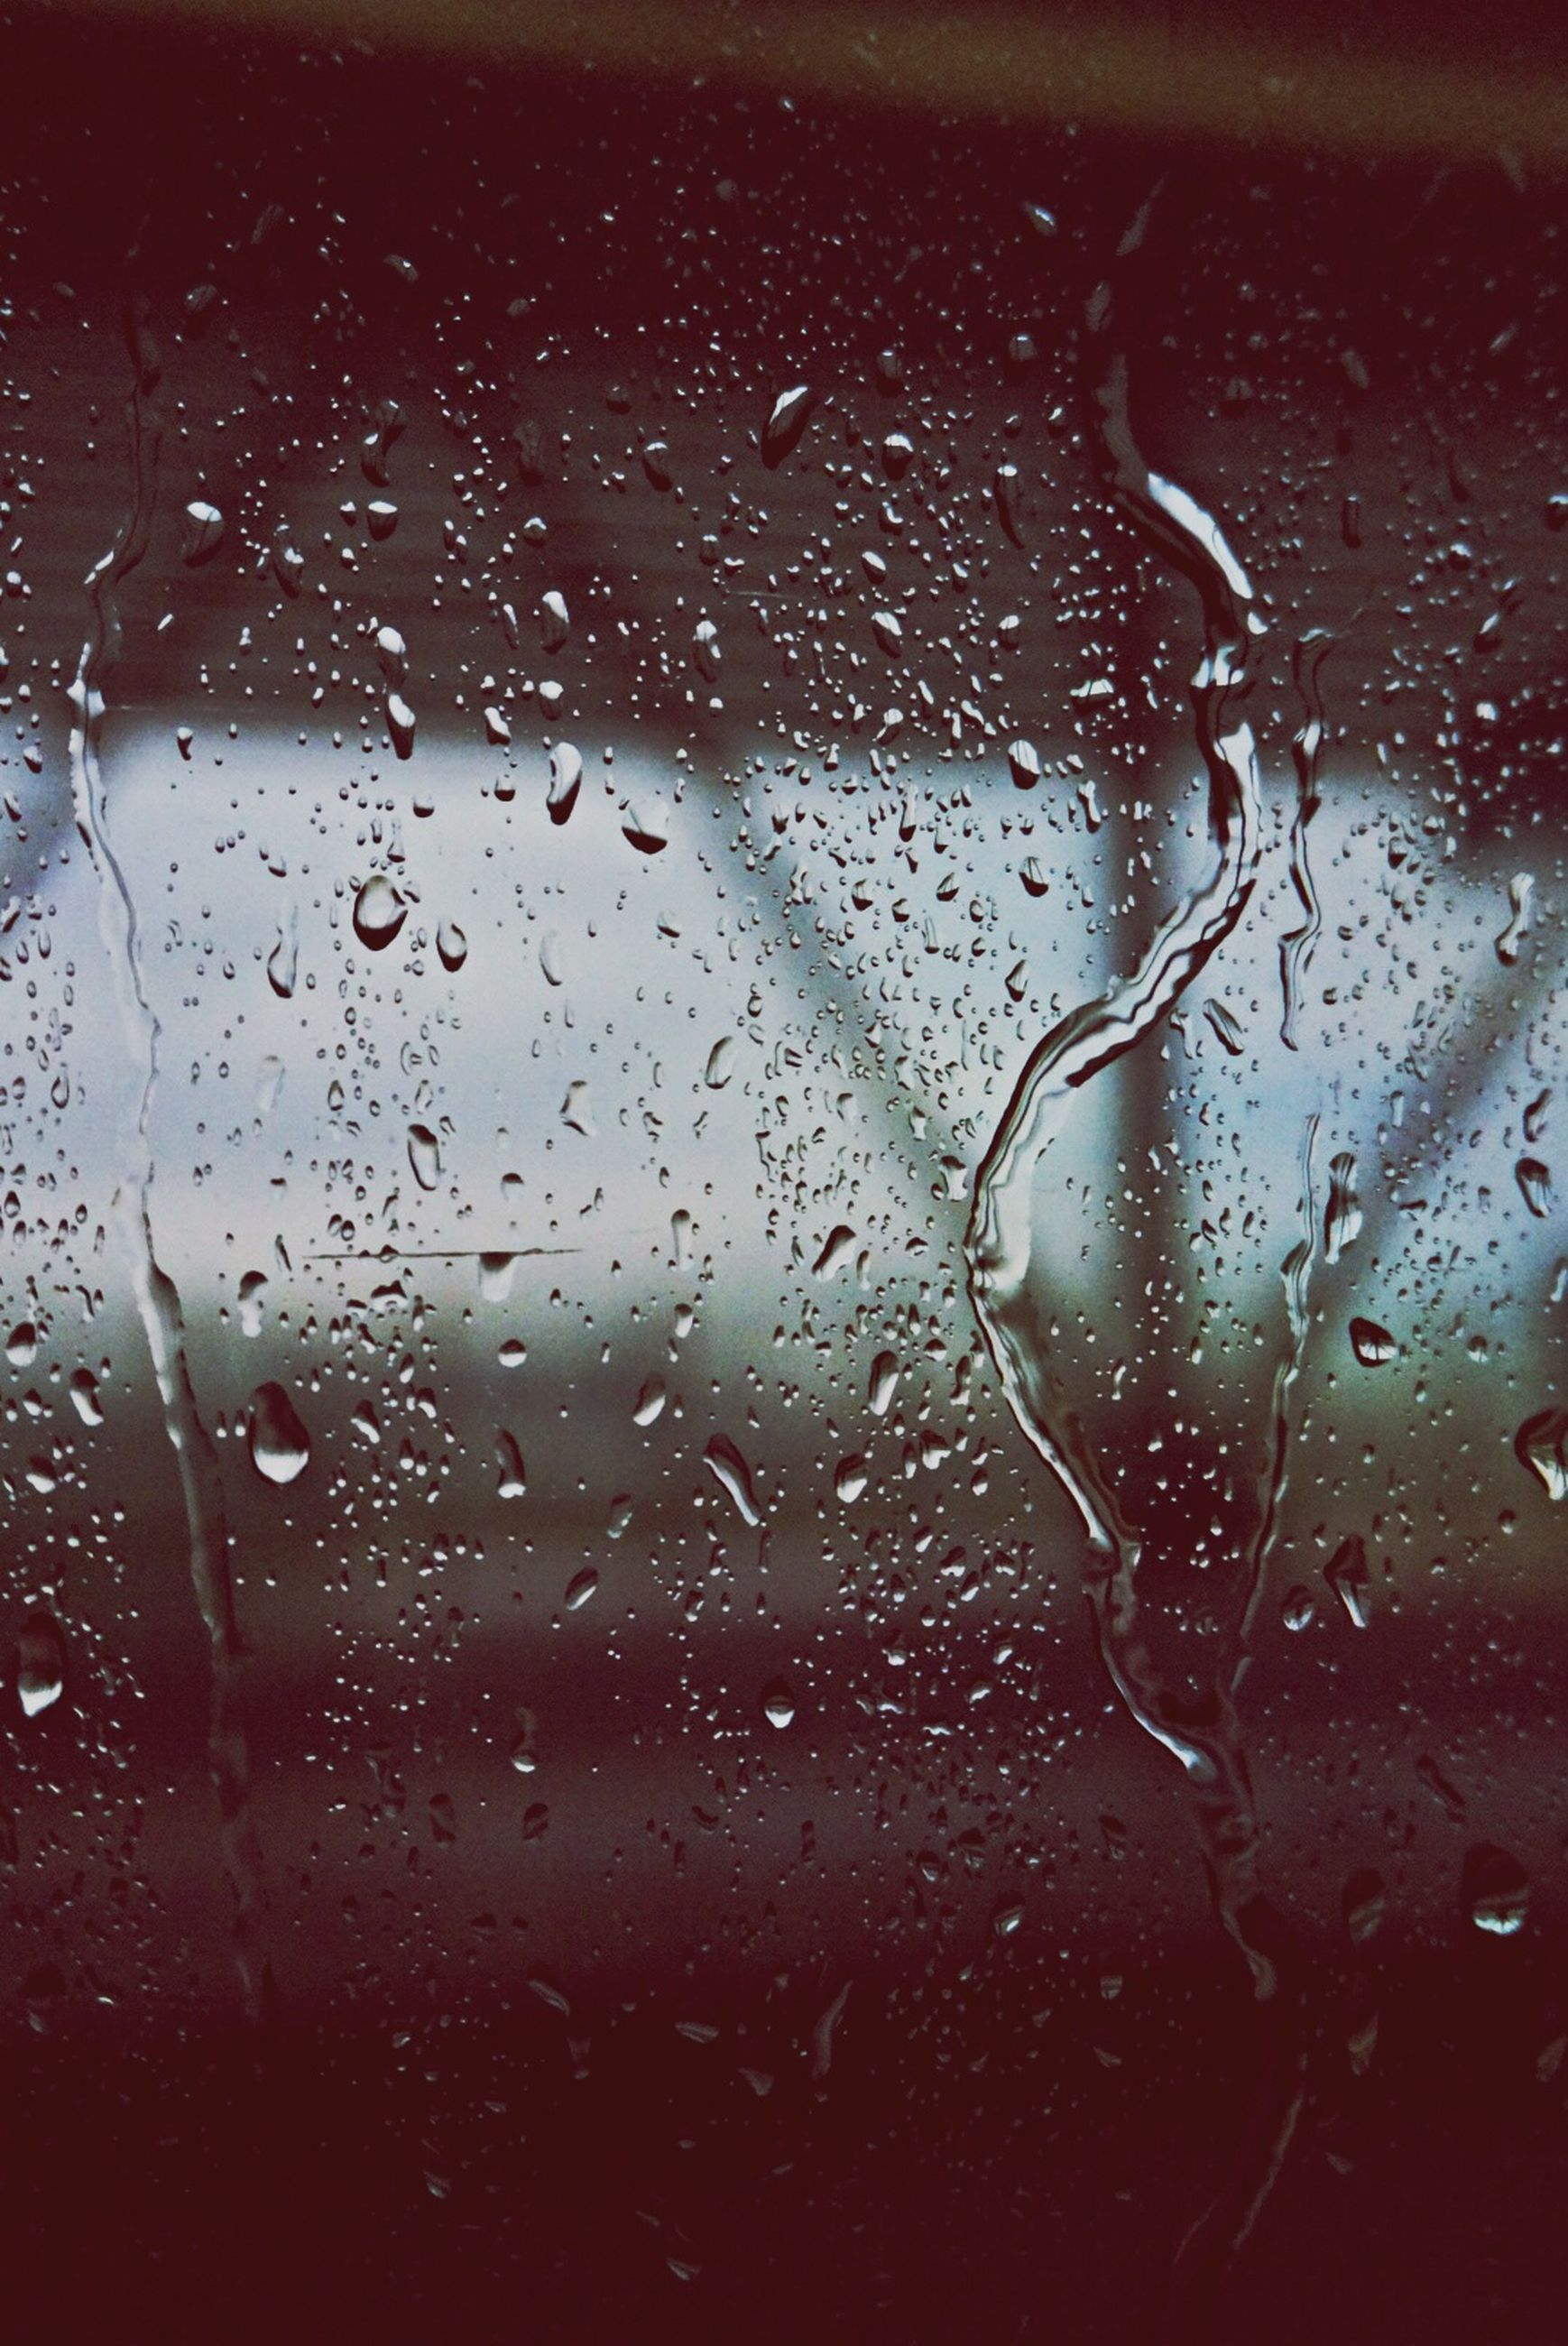 drop, wet, window, rain, water, transparent, indoors, raindrop, glass - material, weather, season, full frame, backgrounds, focus on foreground, close-up, glass, droplet, water drop, monsoon, sky